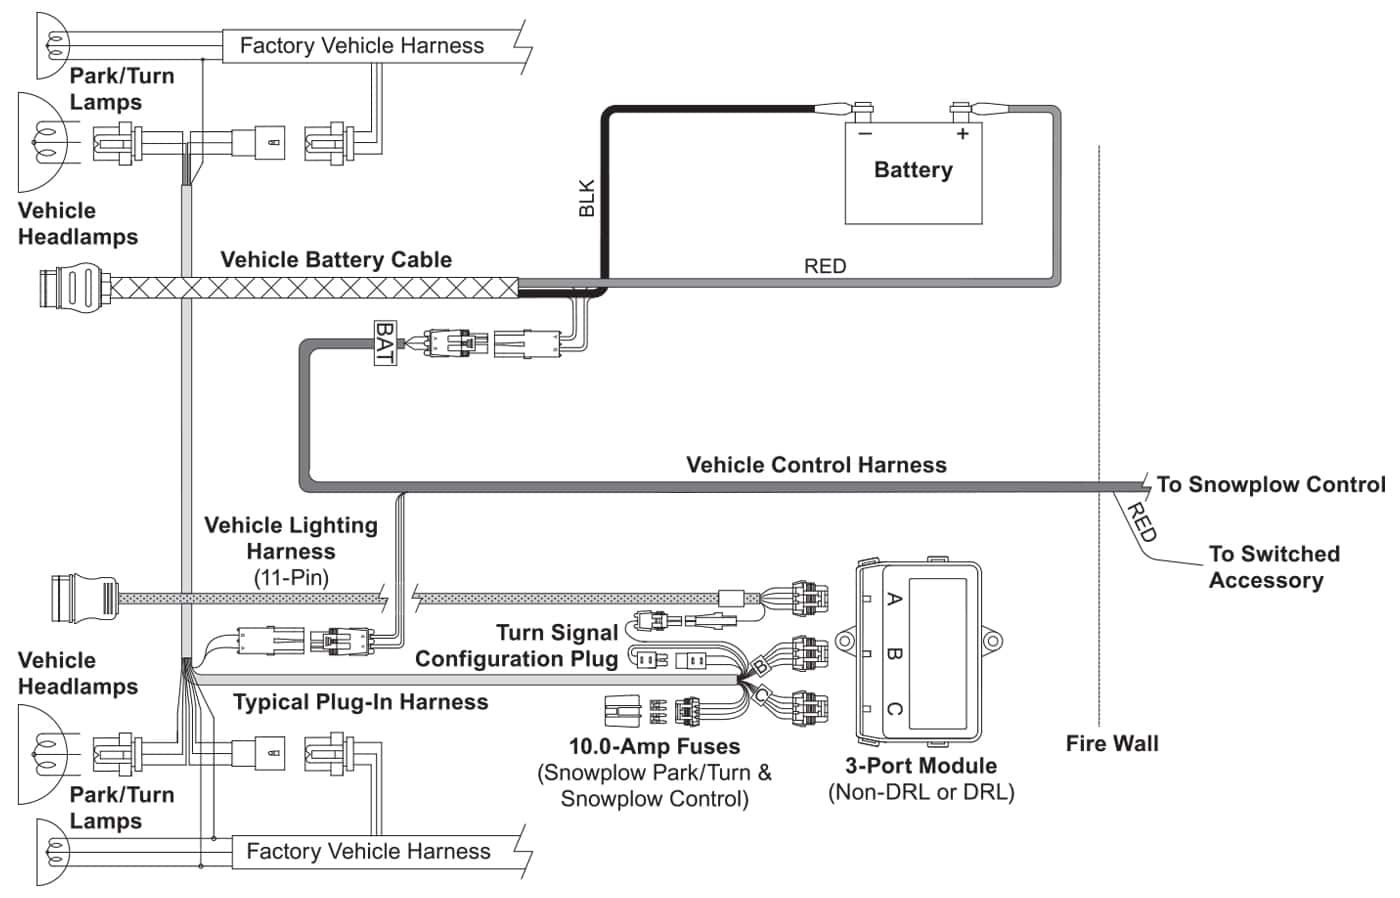 fire truck wiring diagram free picture schematic fisher plow controller wiring harness wiring diagram data  fisher plow controller wiring harness